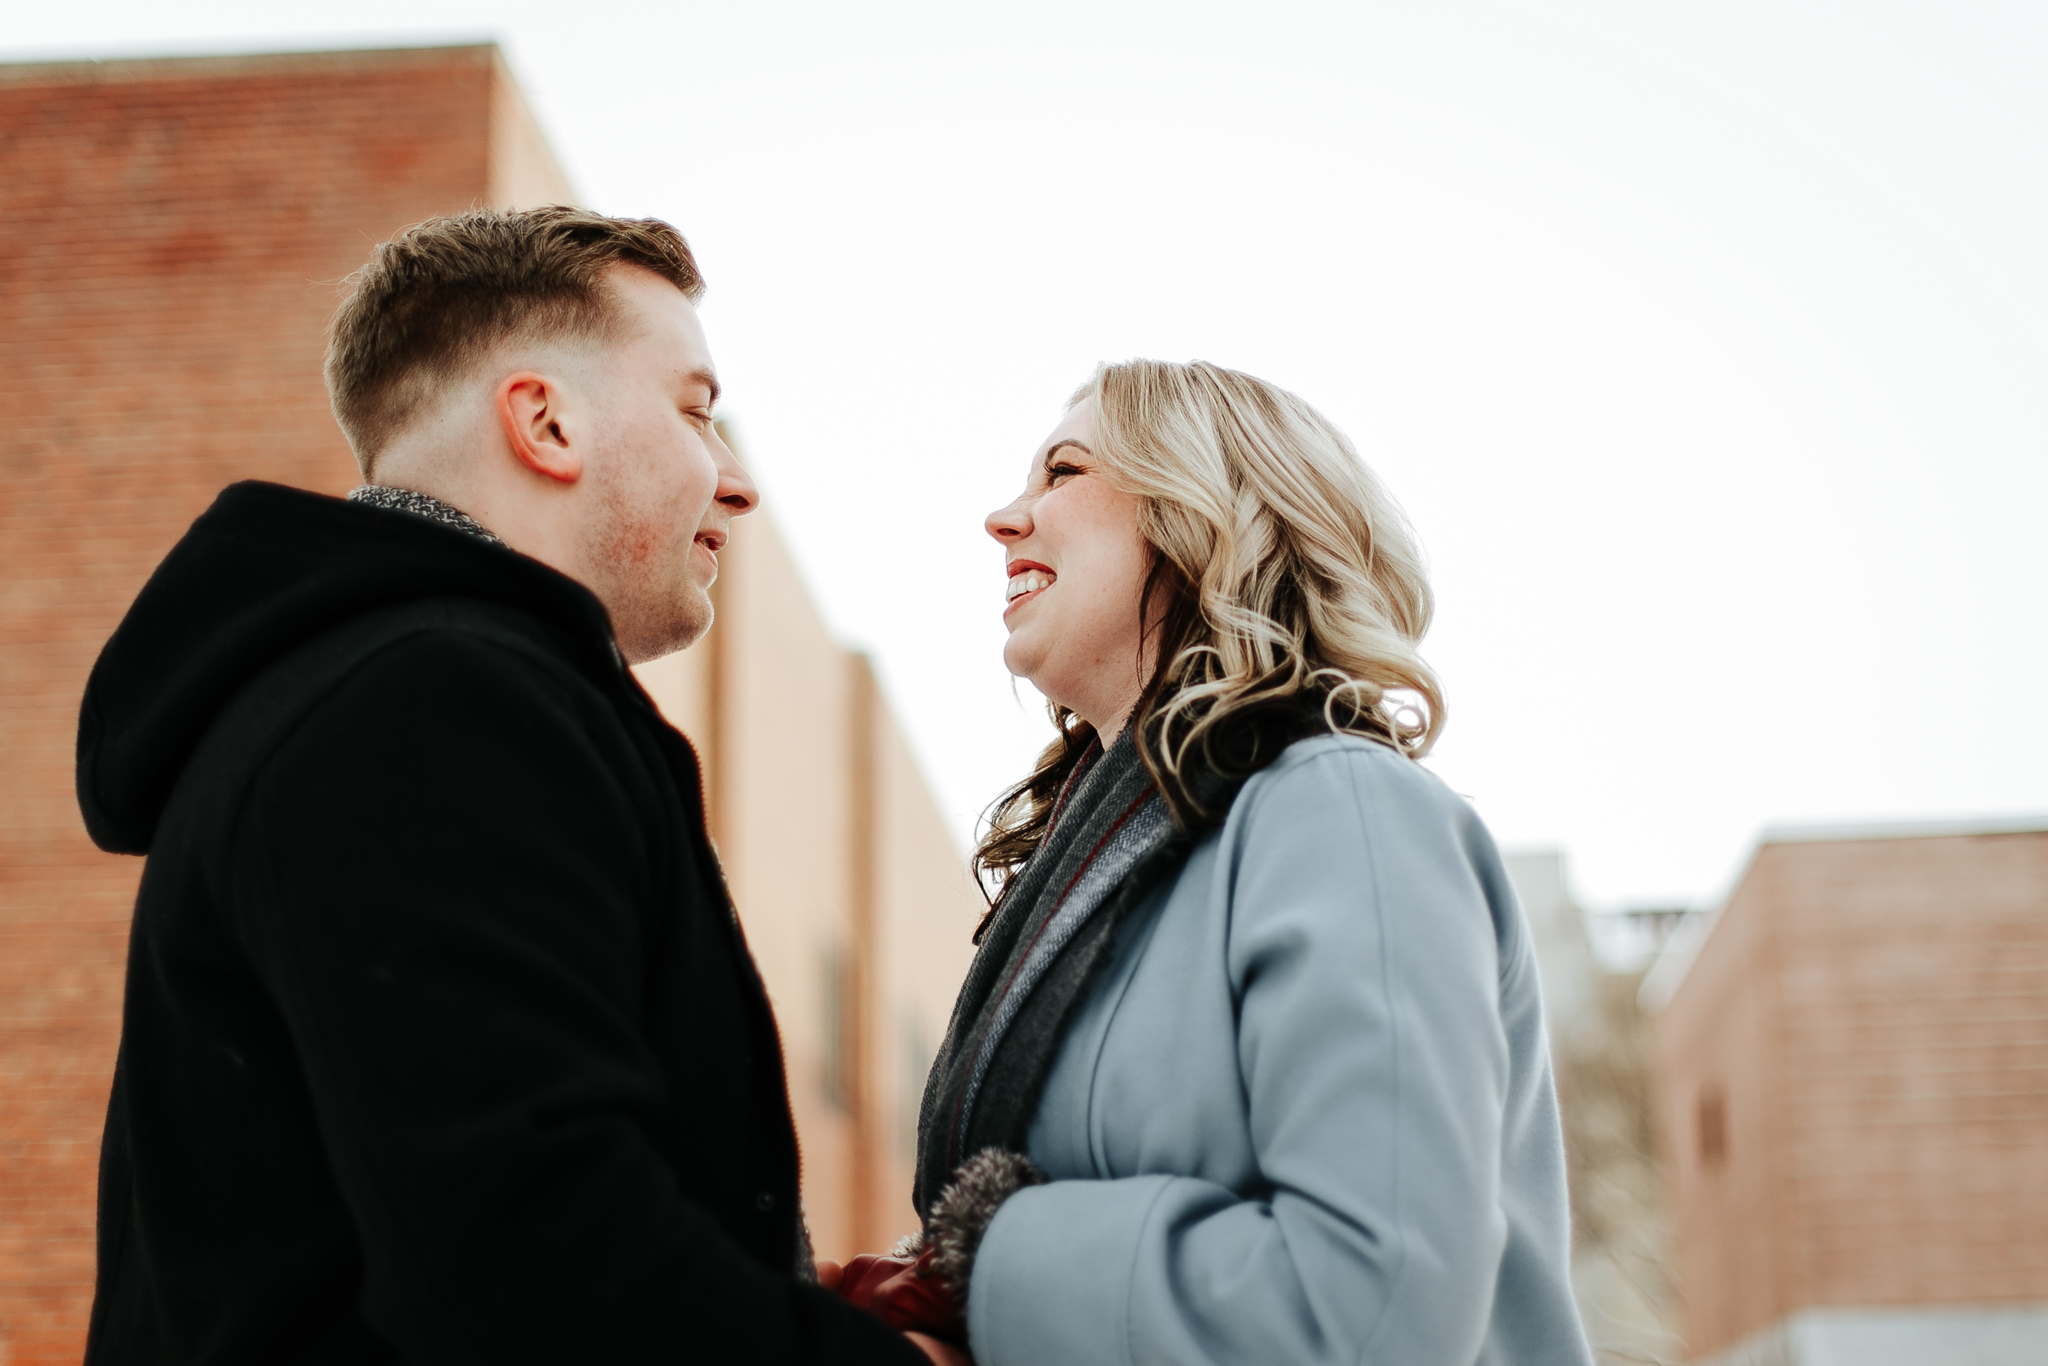 lethbridge-photographer-love-and-be-loved-photography-brandon-danielle-winter-engagement-downtown-yql-picture-image-photo-37.jpg